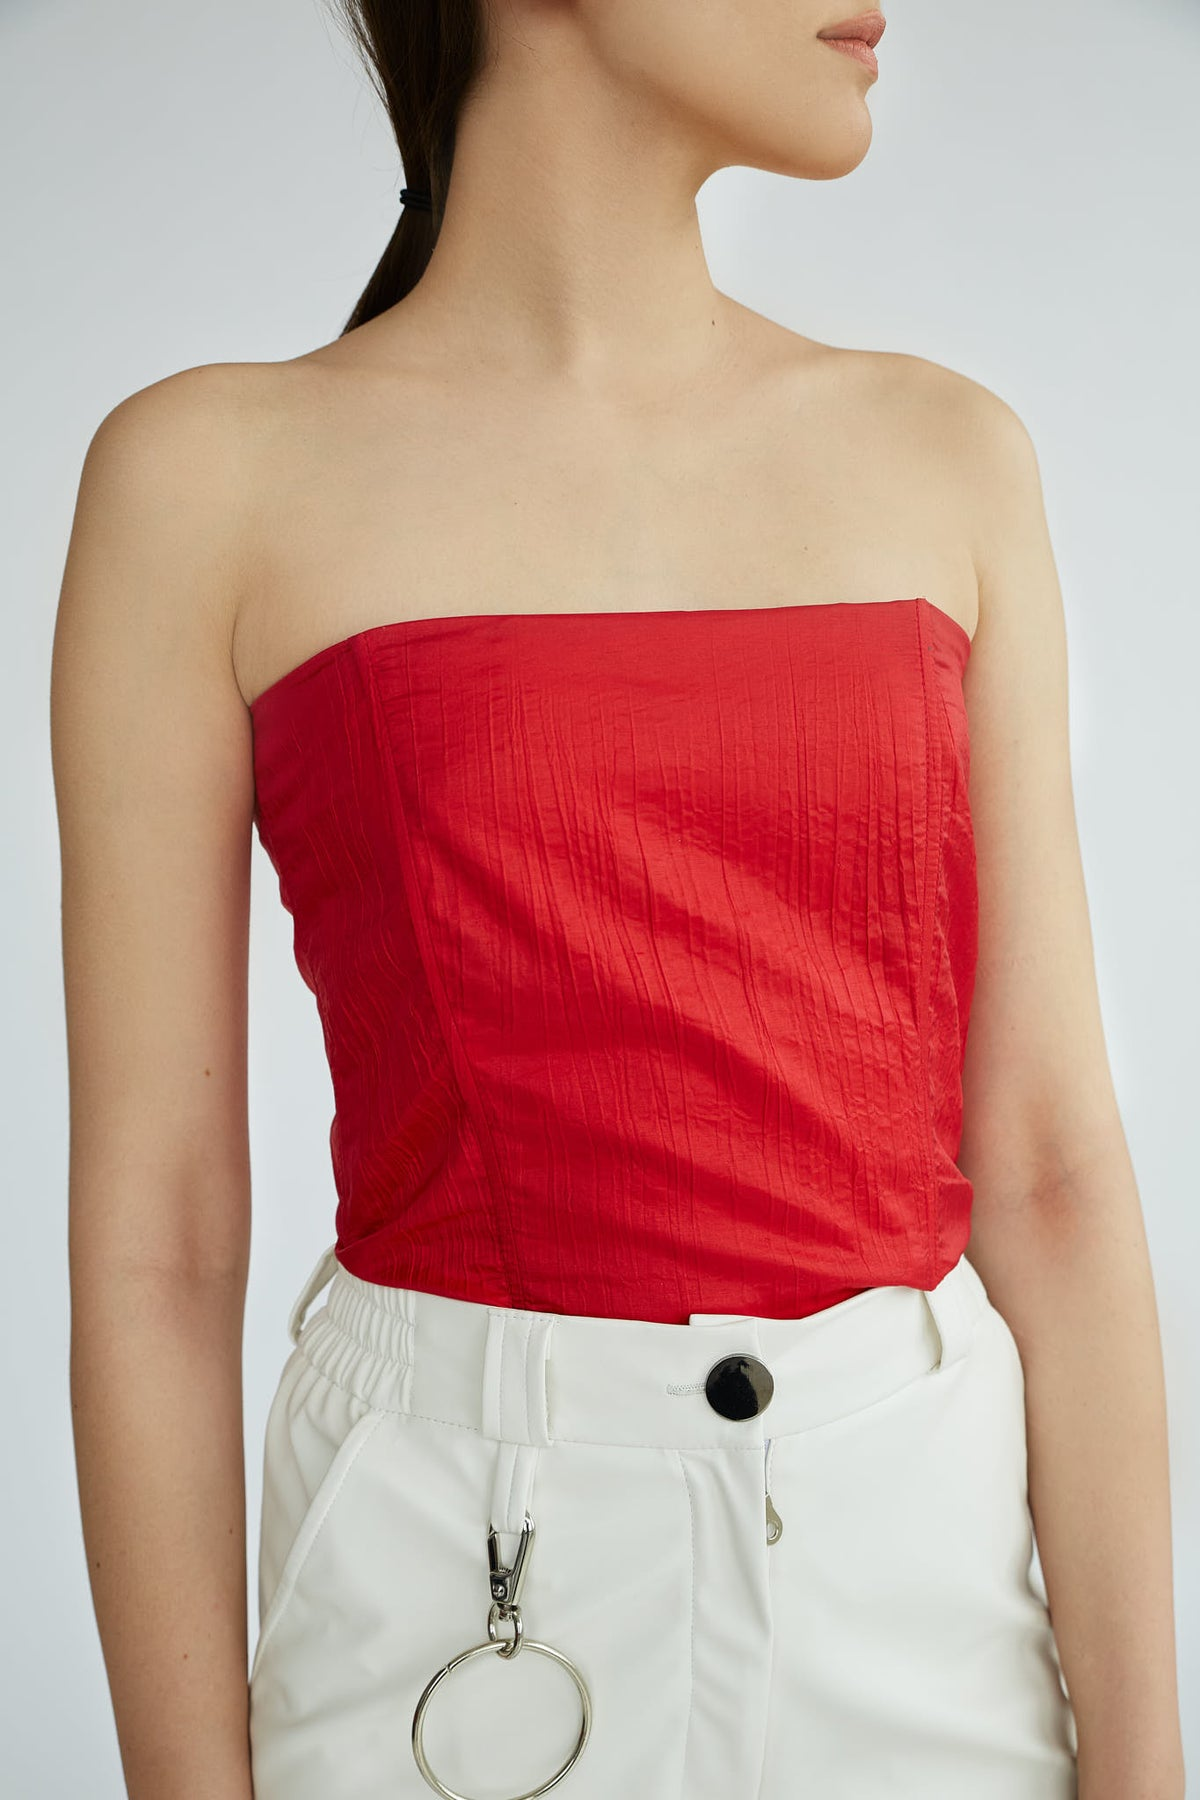 Frida | Red Volume Sleeve Top - Le Slap - Deep Red Clothing Off The Shoulder